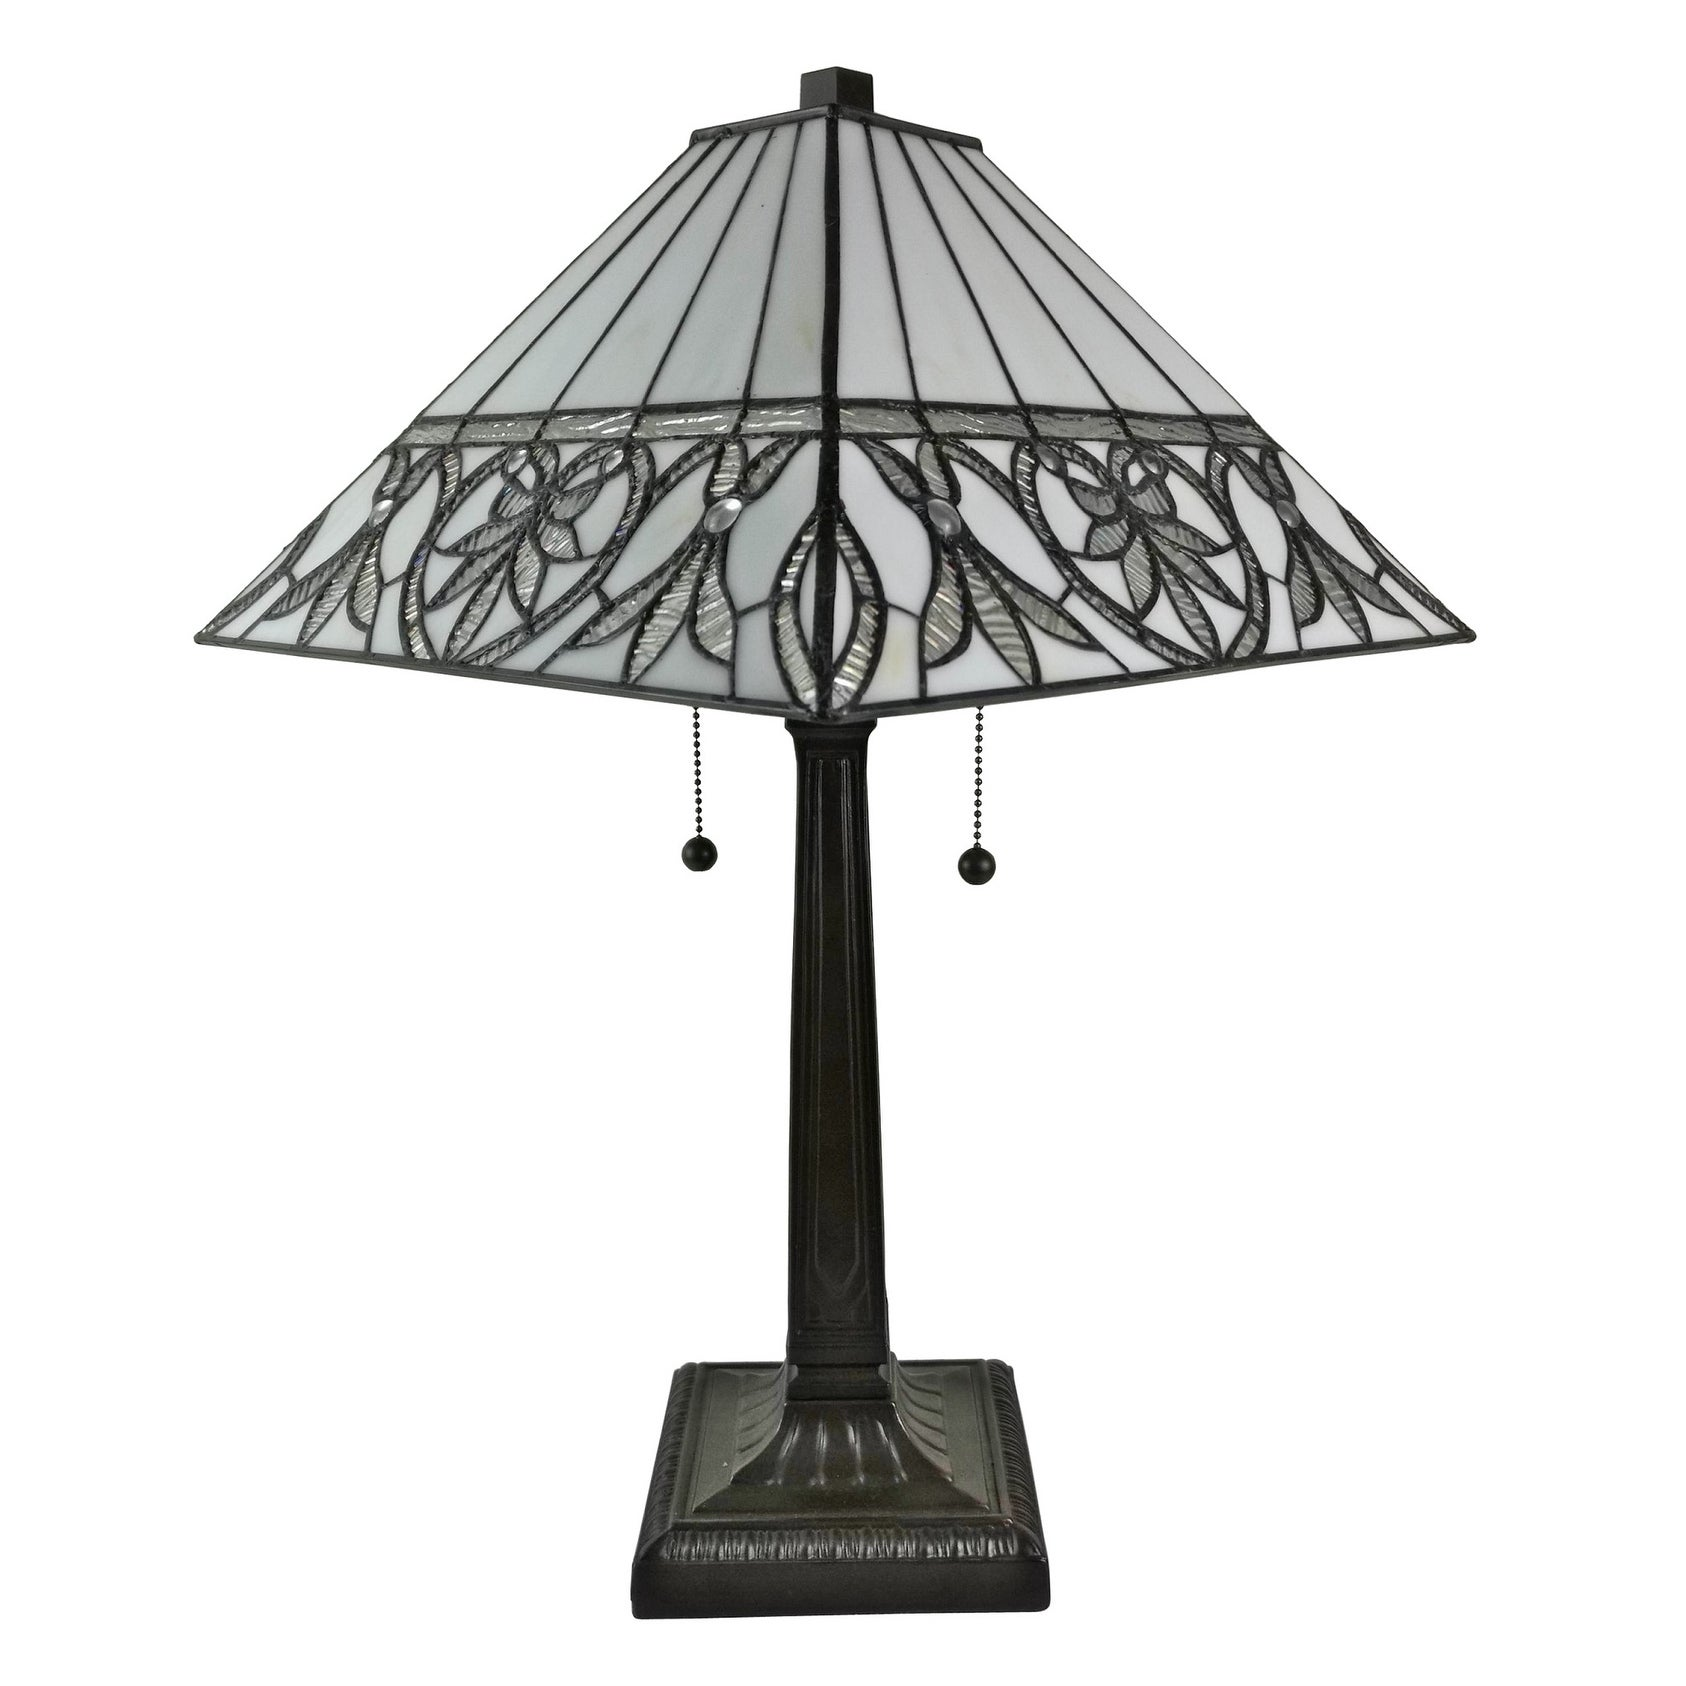 Amora Lighting Am303tl14 Tiffany Style White Fl Mission Table Lamp 22 Inches Tall